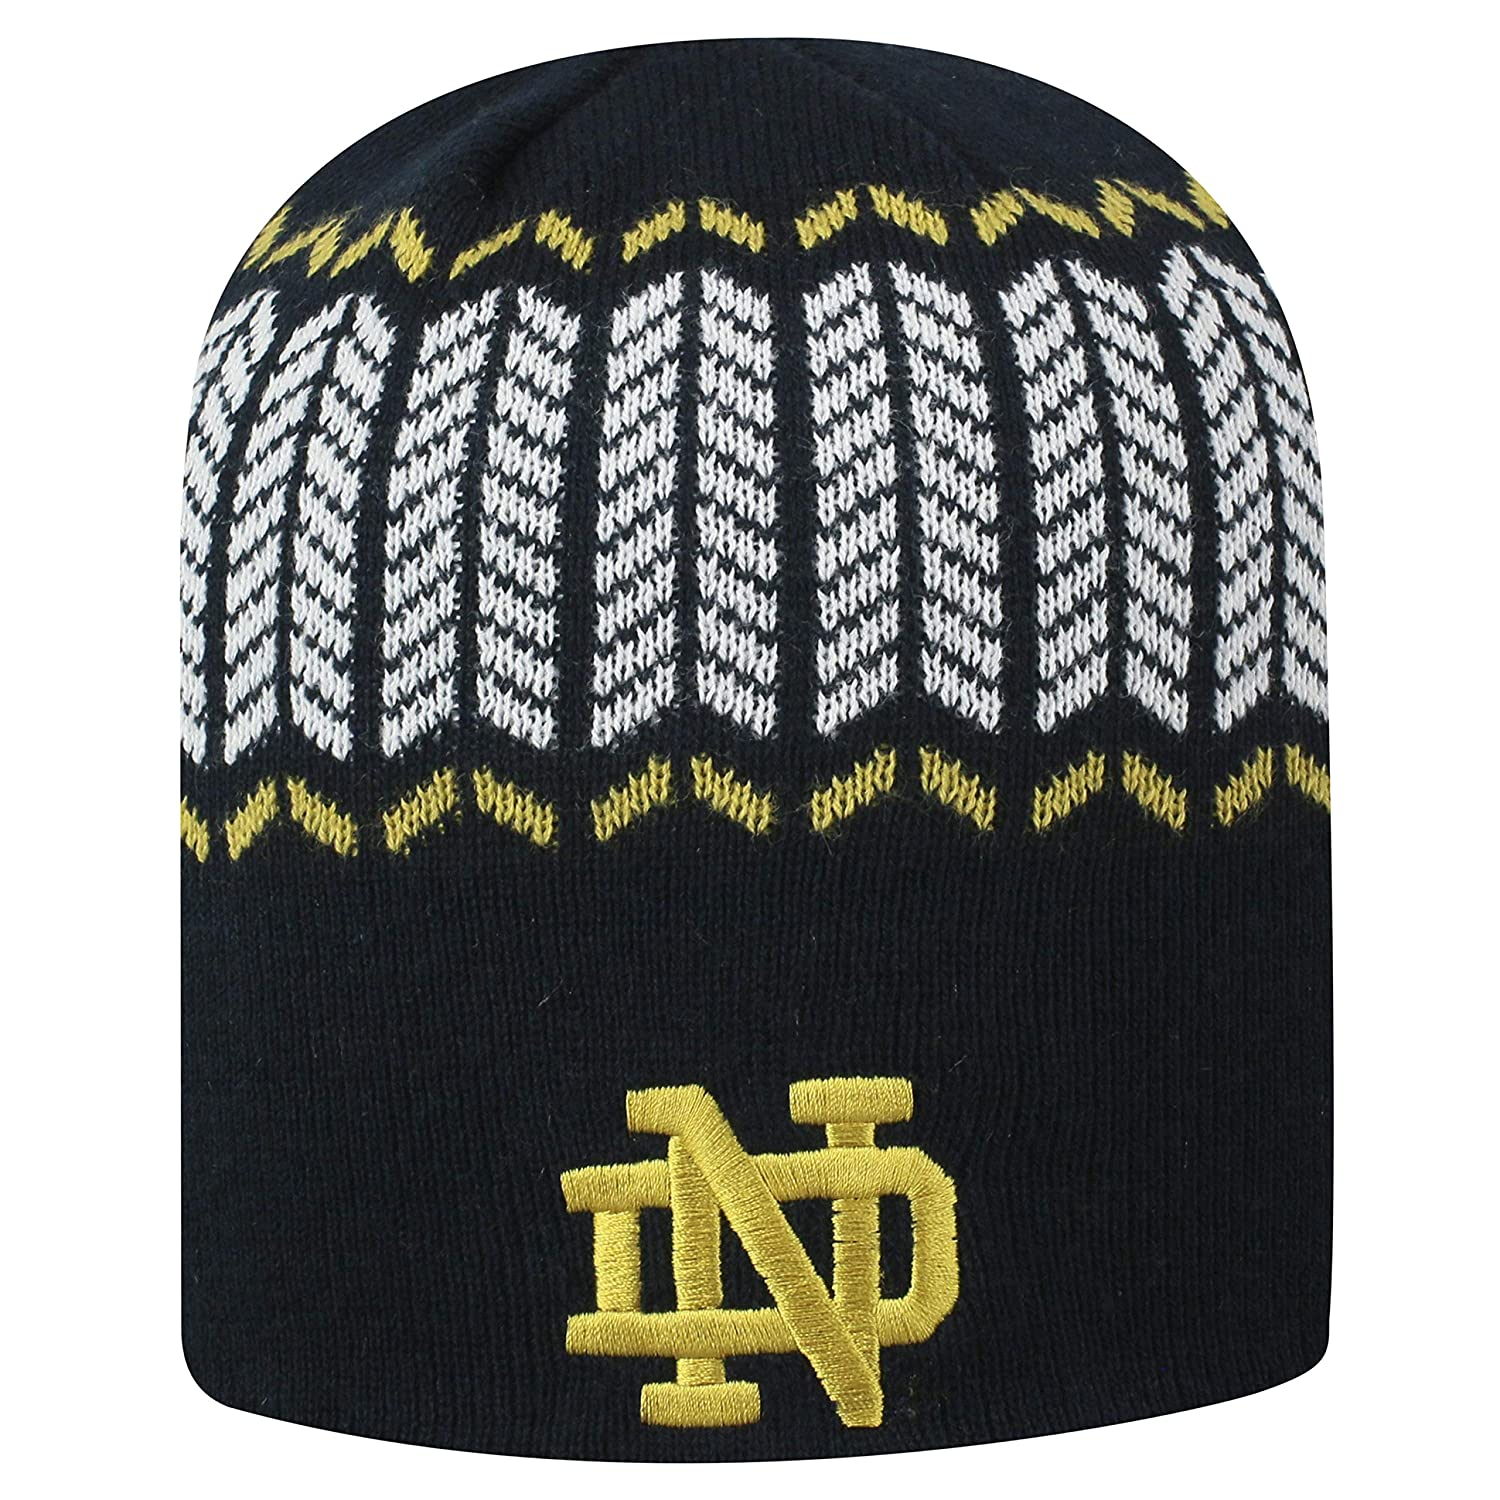 Top of the World Notre Dame Fighting Irish Official NCAA Uncuffed Knit Sports Stripe Hat 744766